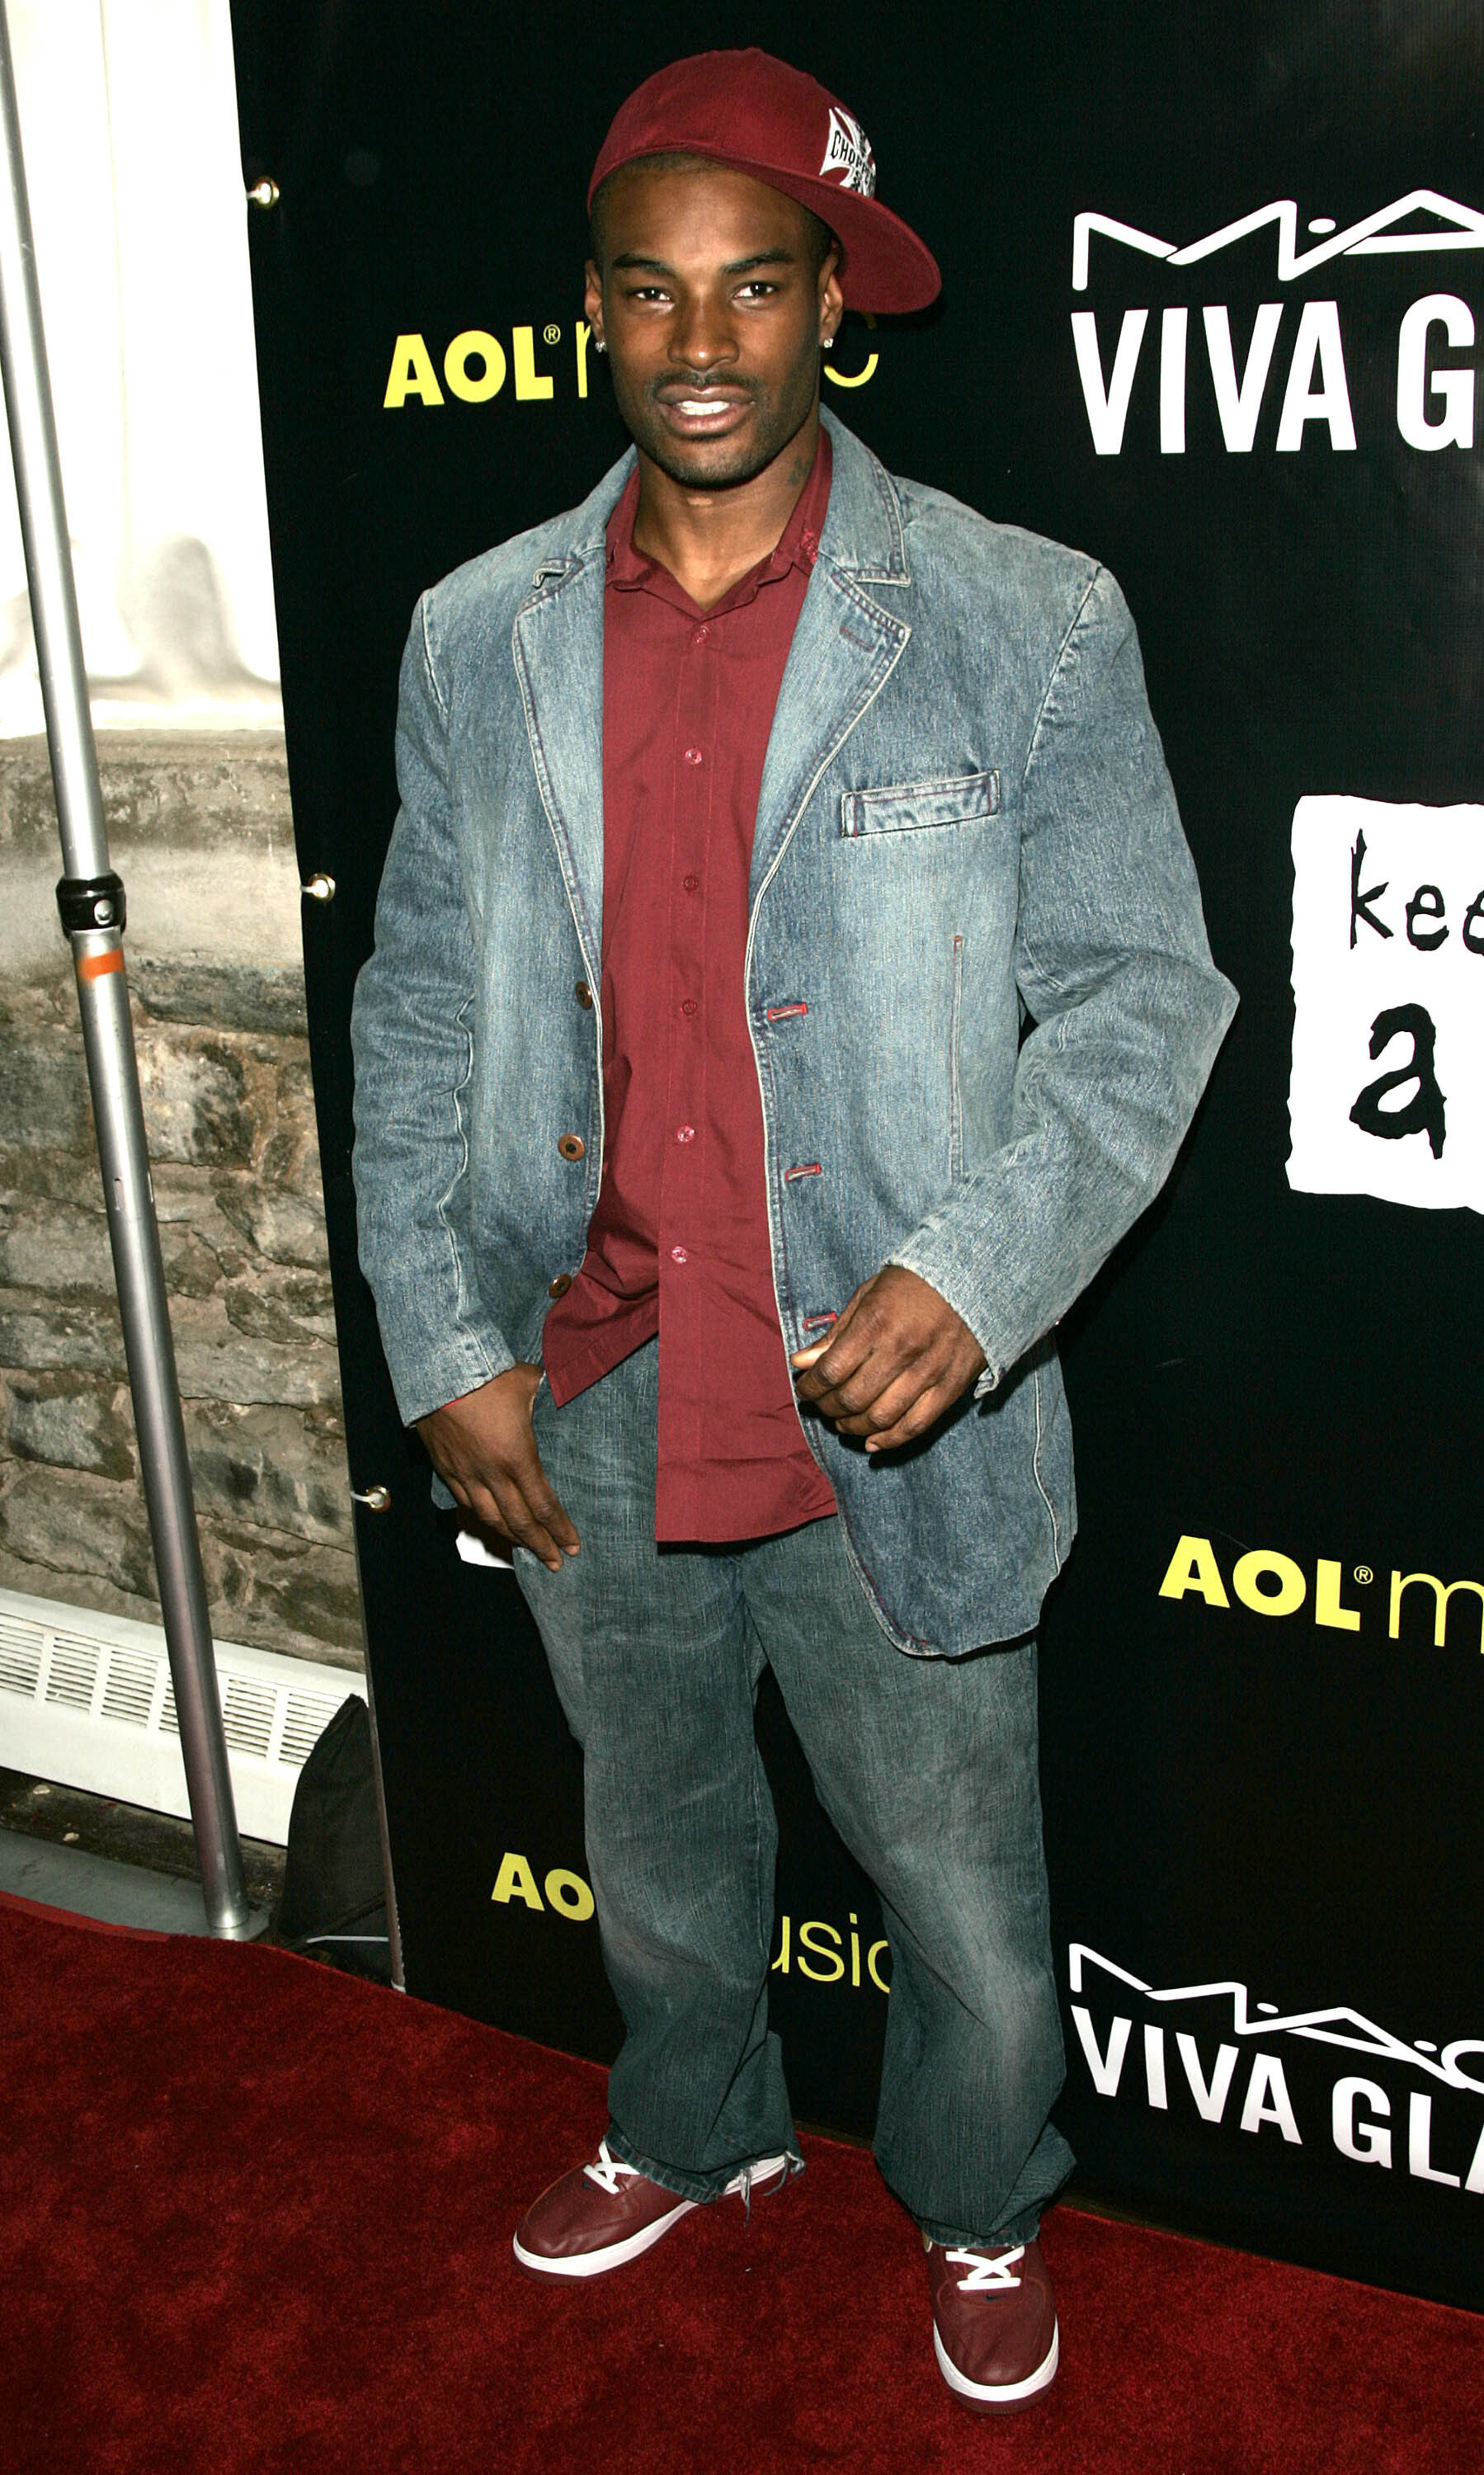 A photo of Tyson Beckford on a red carpet wearing a large denim blazer with jeans.